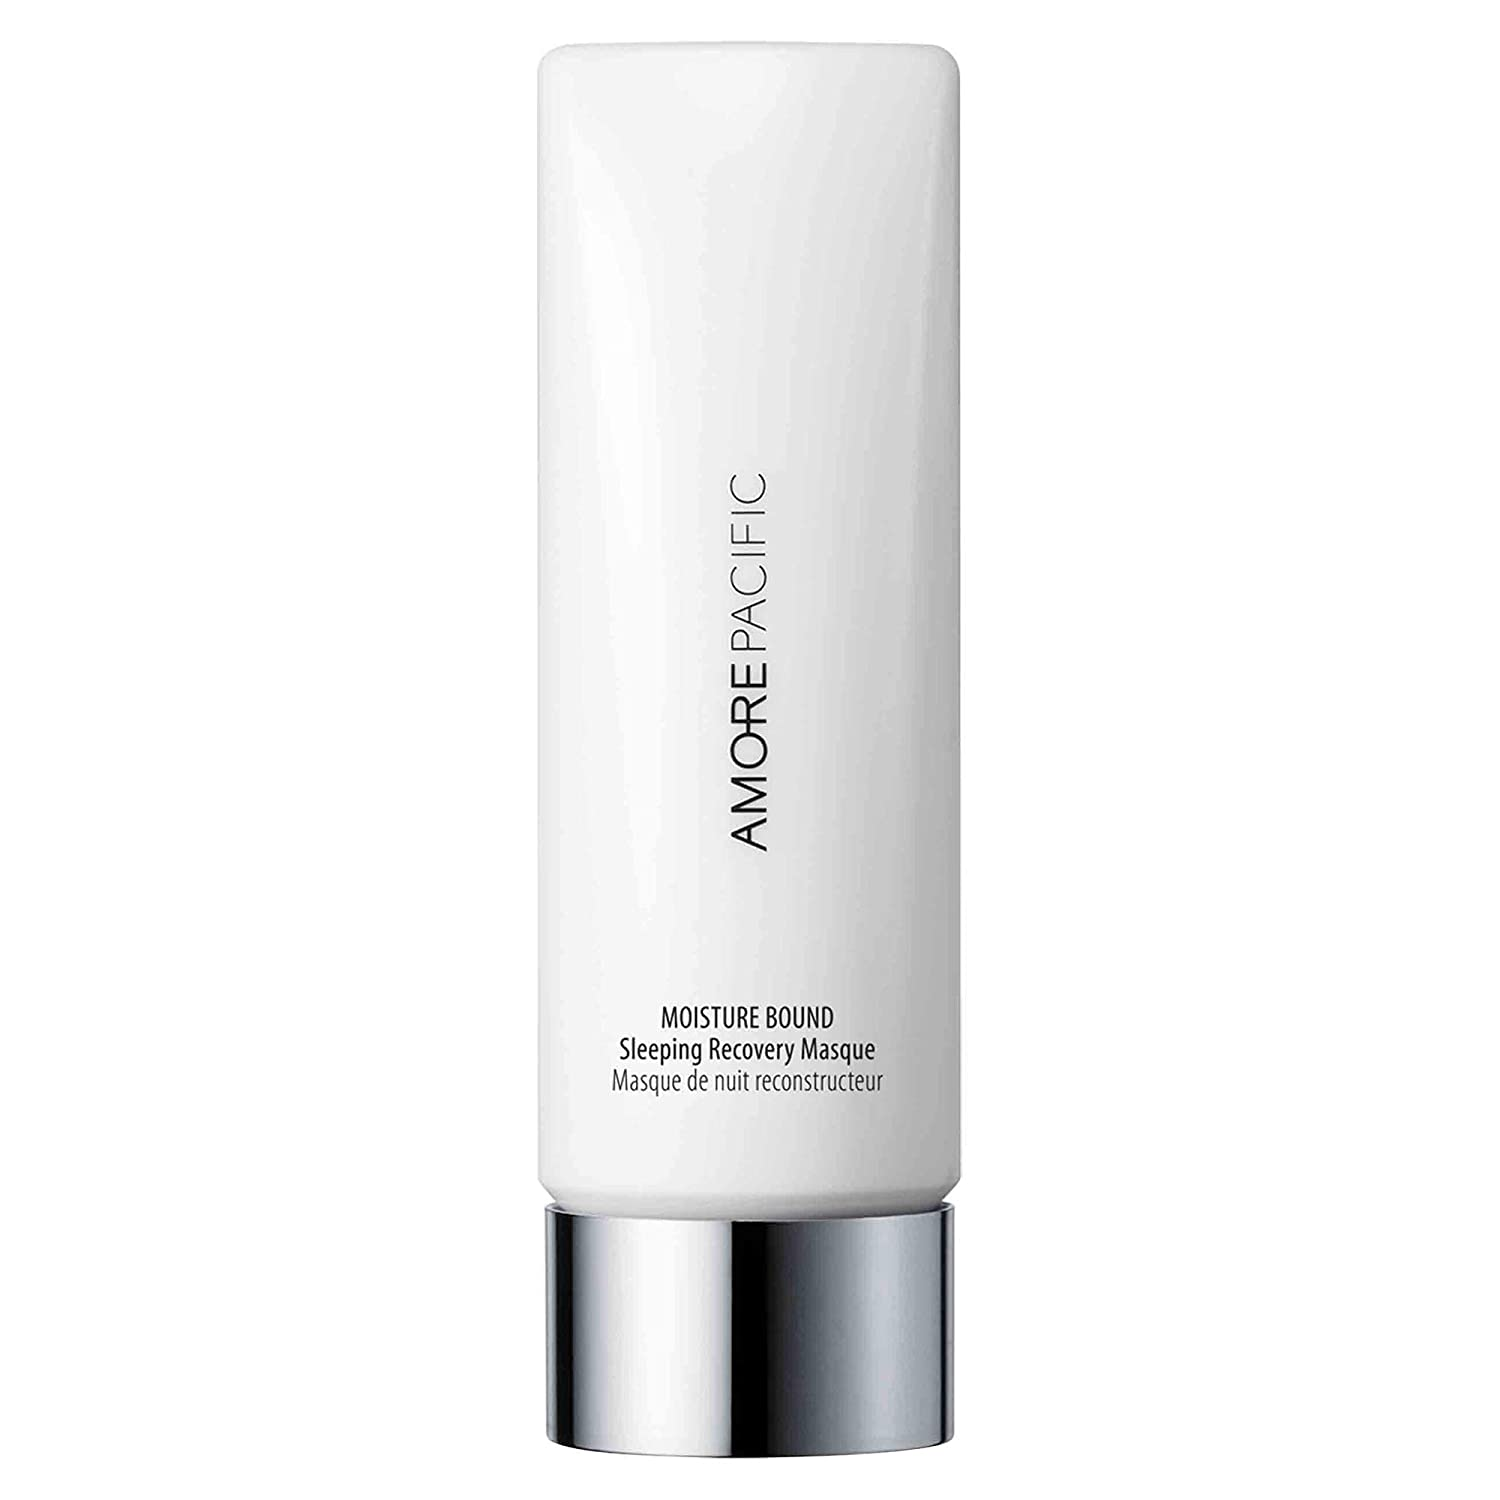 AMOREPACIFIC Moisture Bound Sleeping Recovery Masque Facial Mask, 3.38 Fl Oz